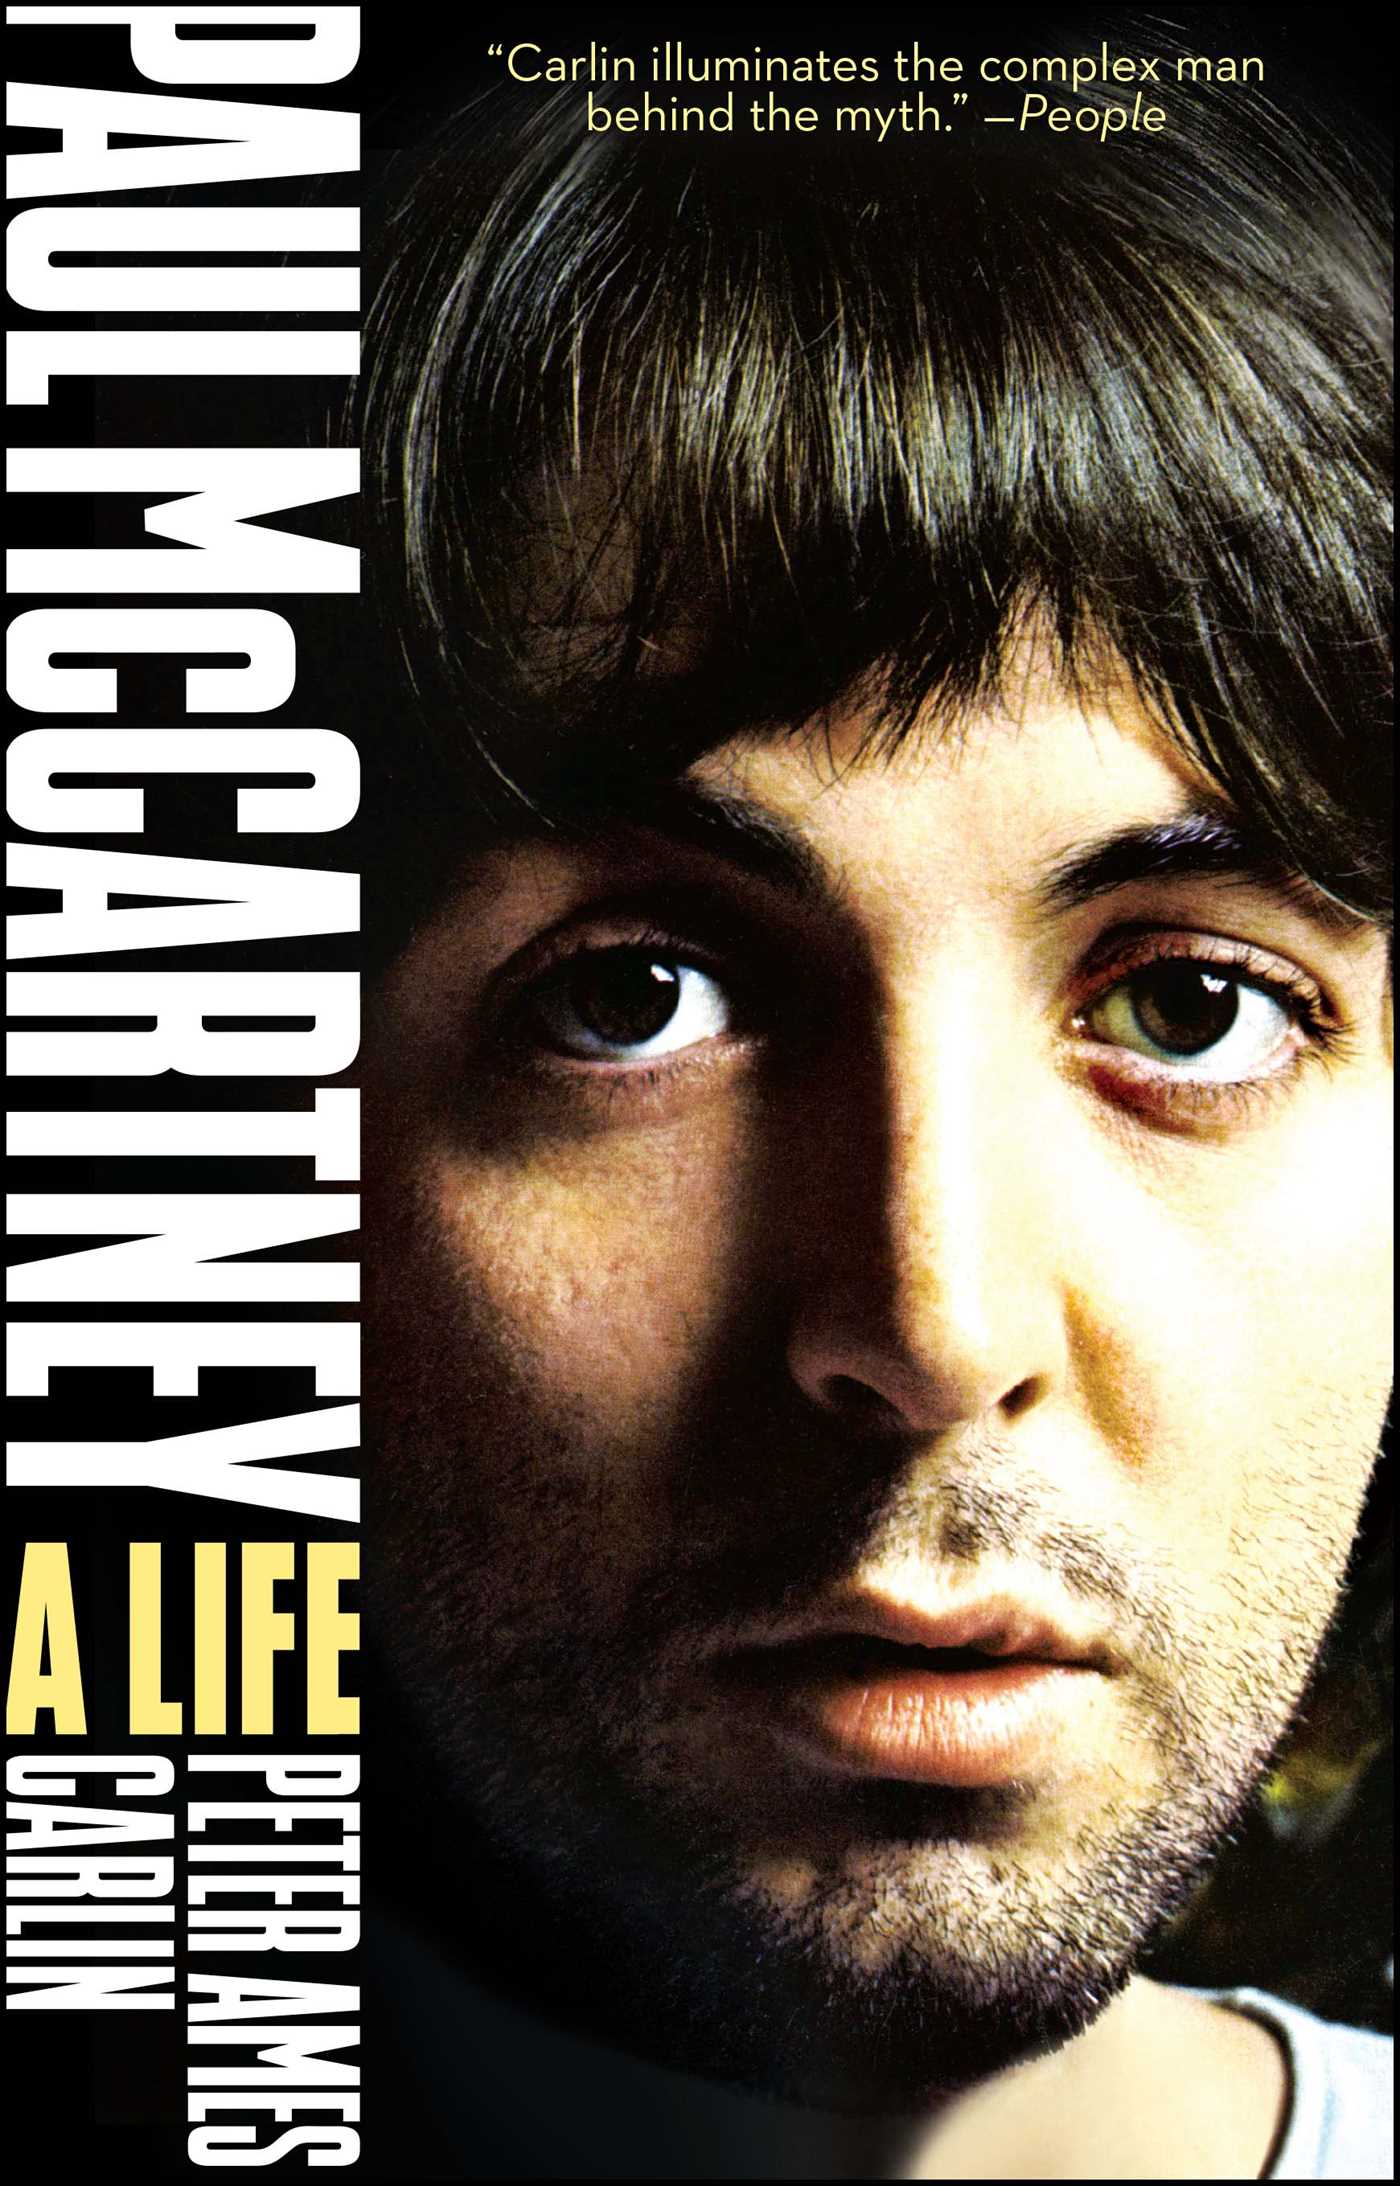 Paul-mccartney-9781416562108_hr